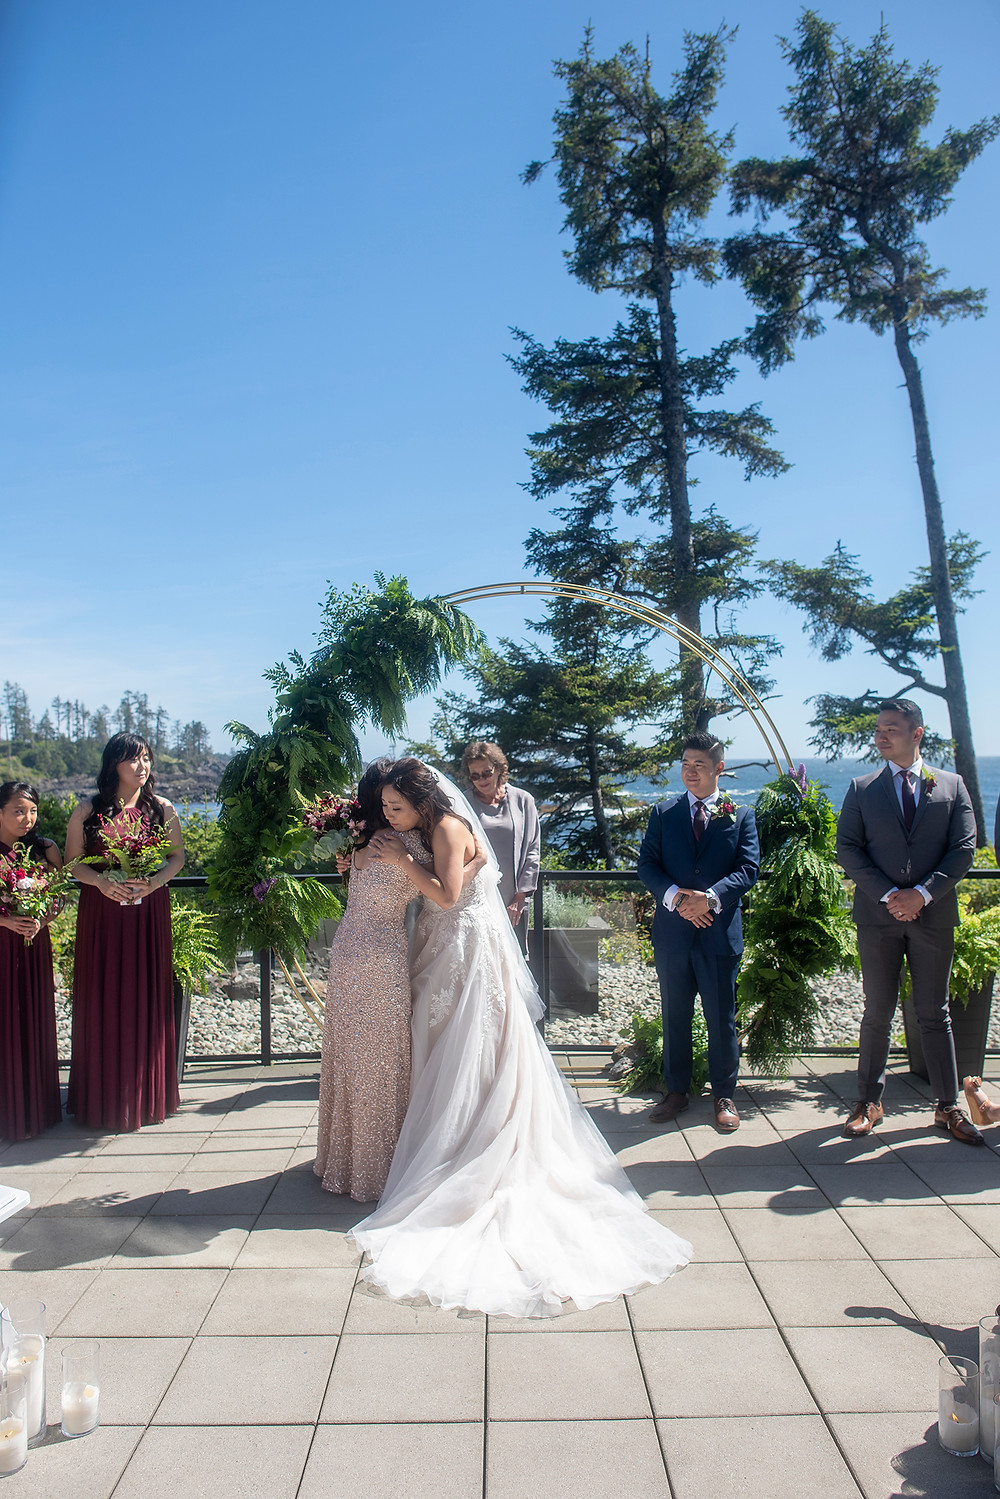 Bride gives mom a hug at her Ucluelet wedding at Black Rock Resort. Photographed by Ucluelet Photographer Kaitlyn Shea.